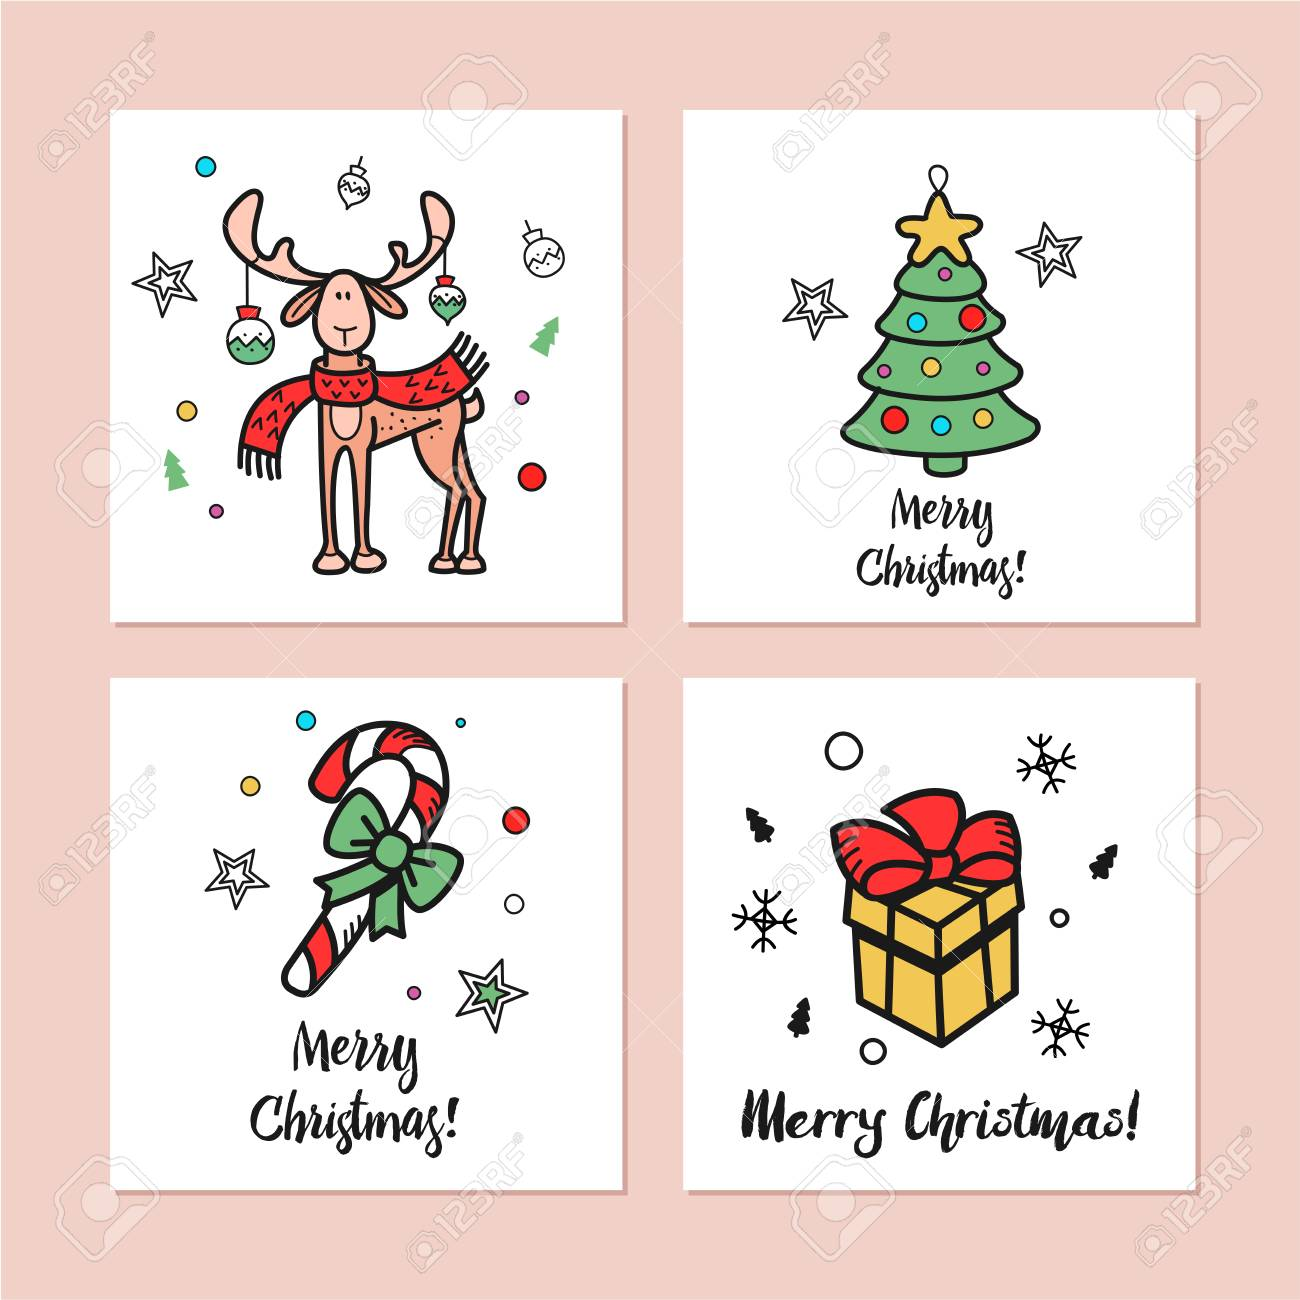 a set of christmas cards drawn by hand happy new year merry royalty free cliparts vectors and stock illustration image 89057329 a set of christmas cards drawn by hand happy new year merry